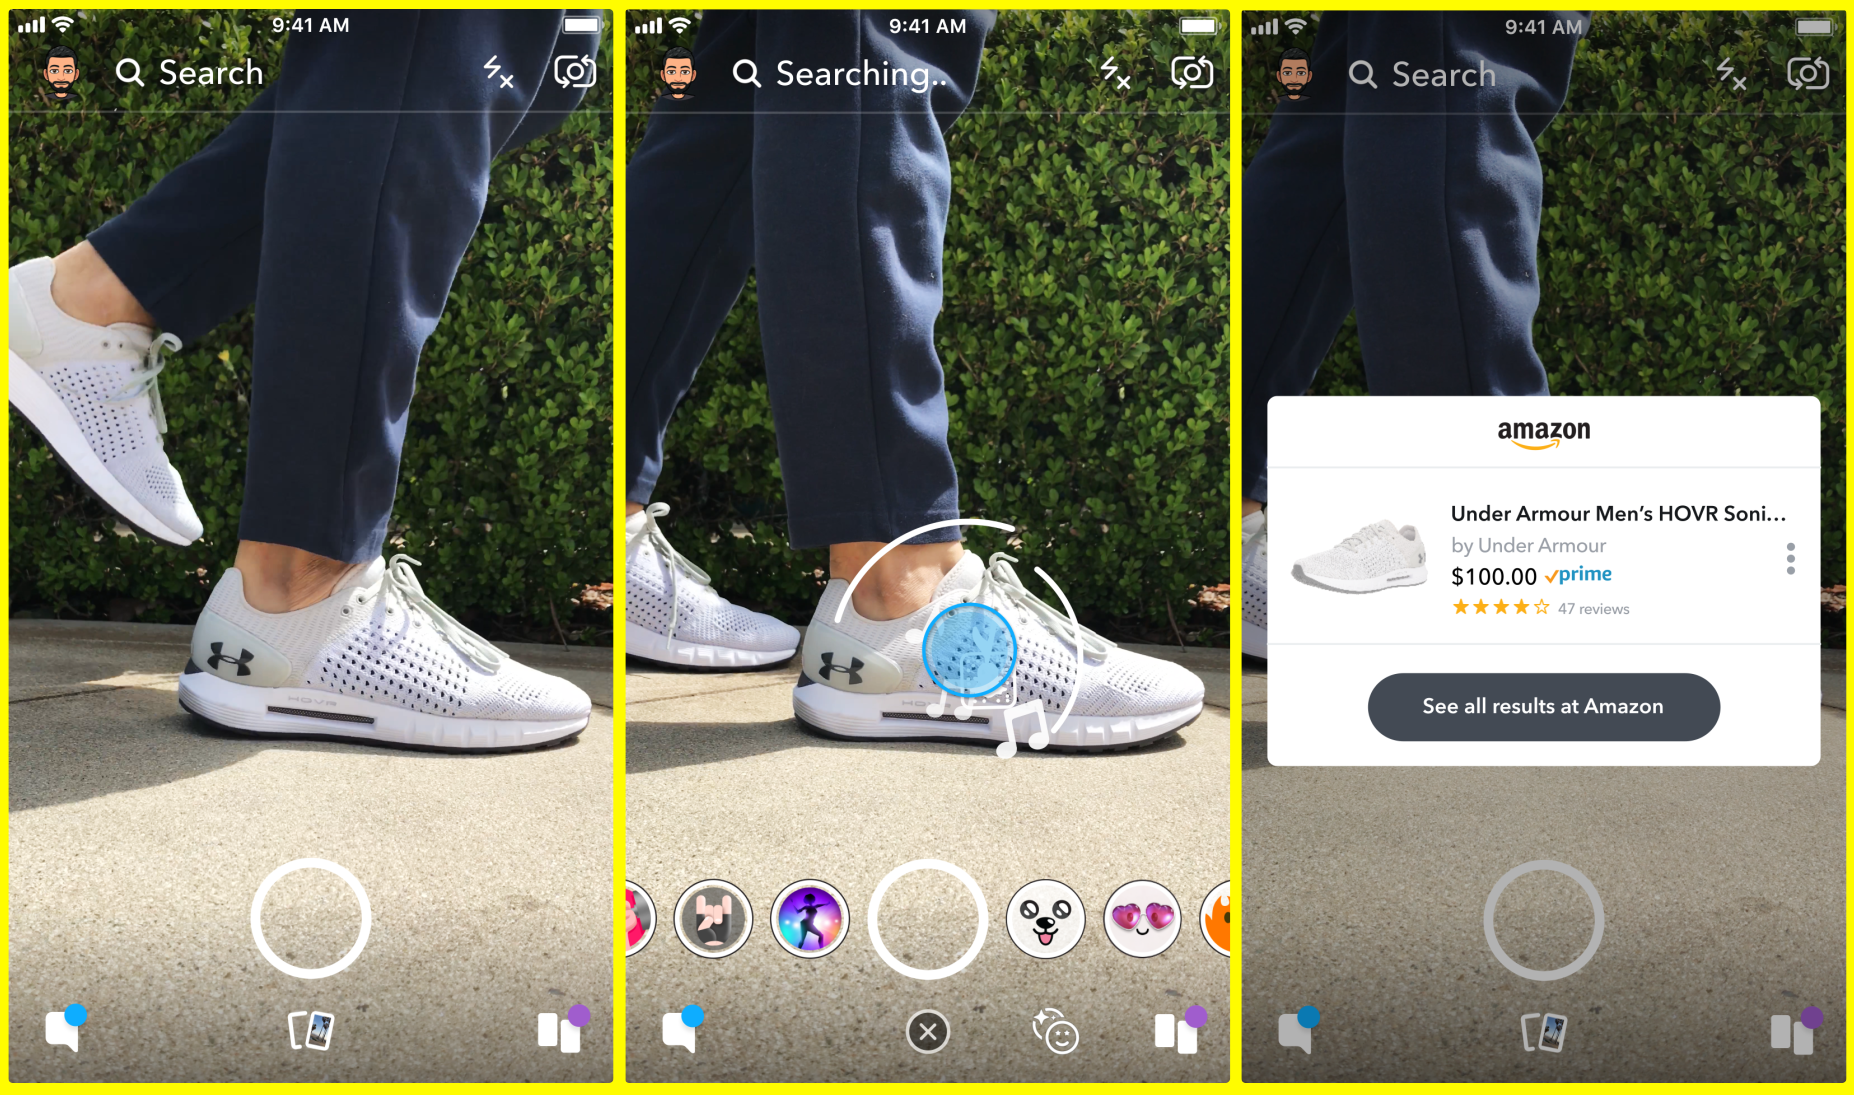 Snapchat's Visual Search in action: Scanning some shoes brings up the corresponding Amazon product page.